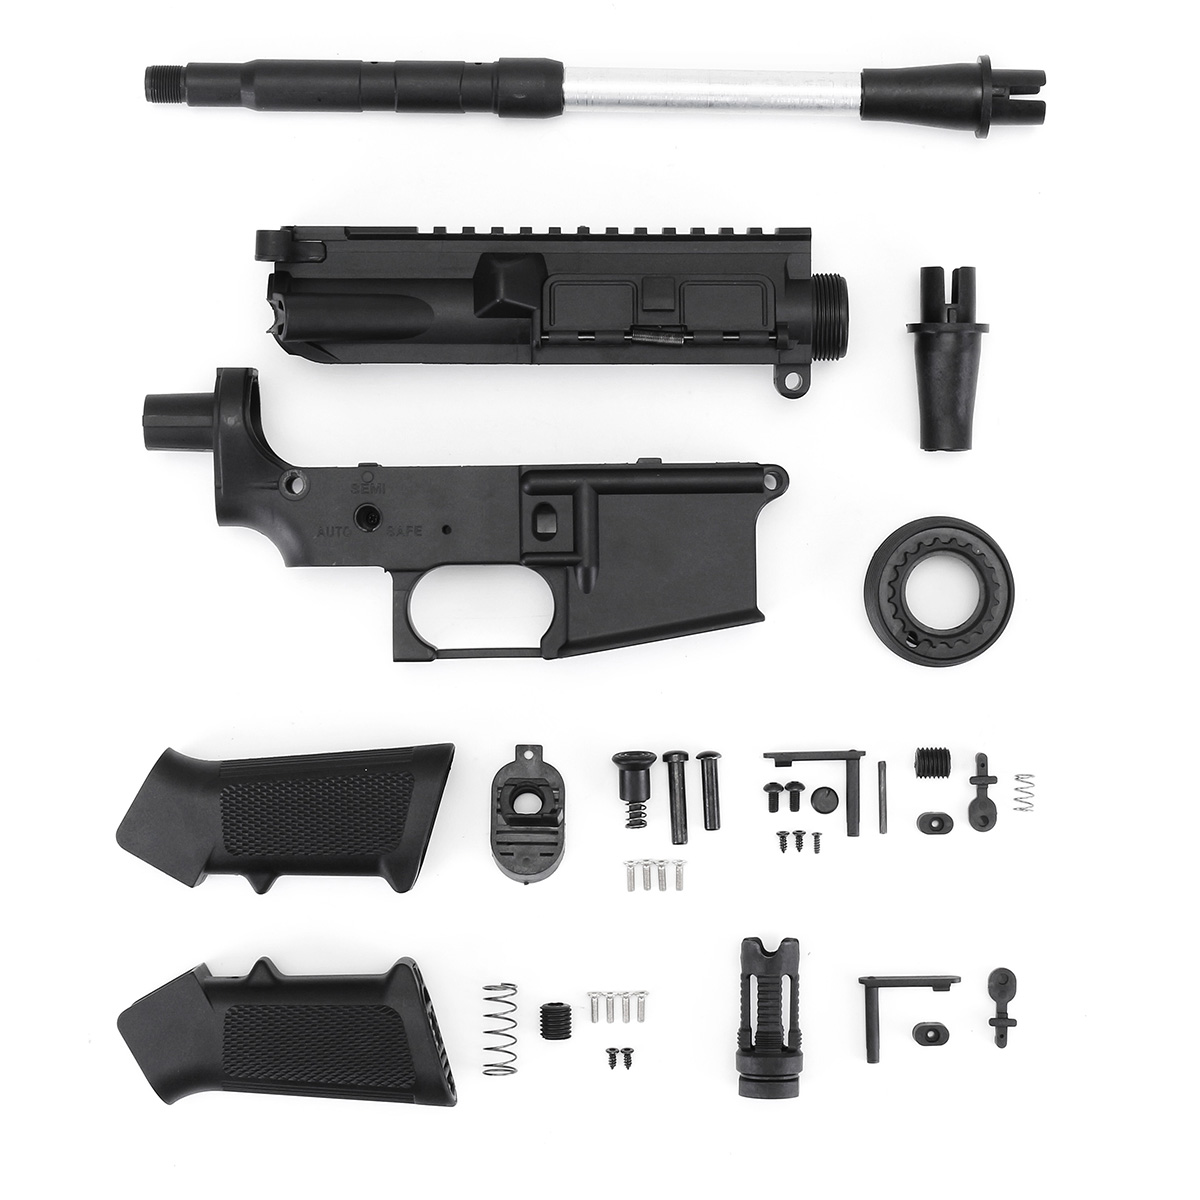 Toy Black Accessories Black Receiver Shell Kits For JinMing Gen9 M4A1 Gel Ball Toy Accessory